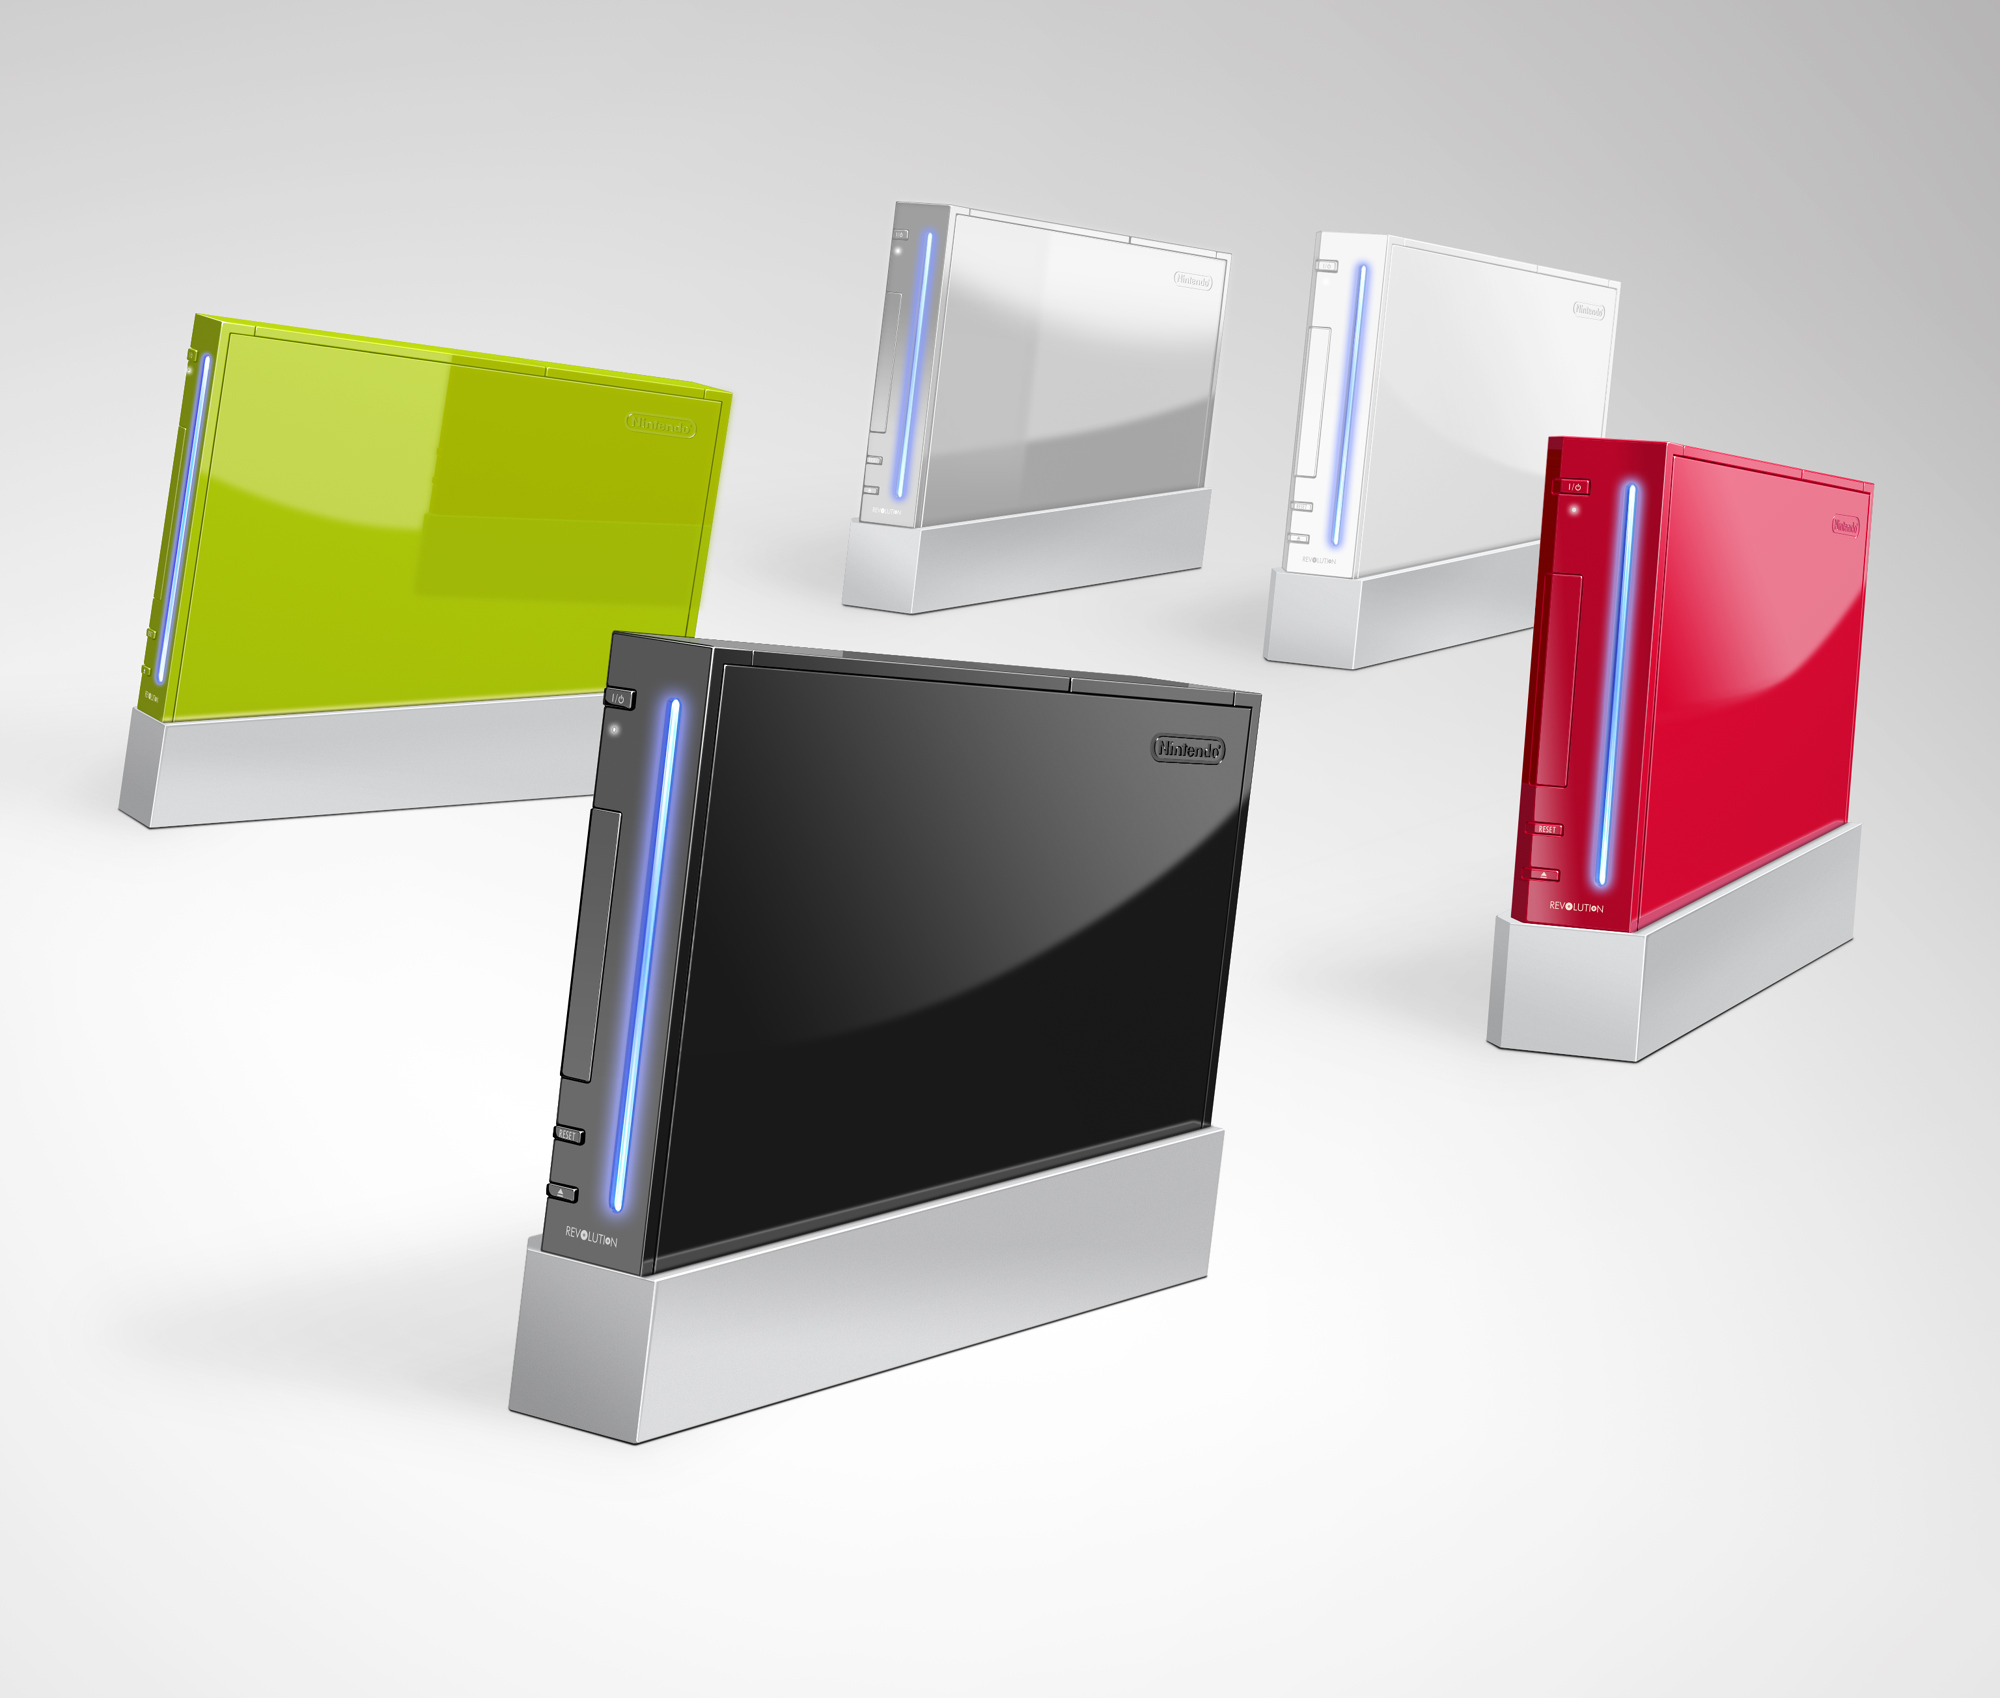 nintendo-wii-colors